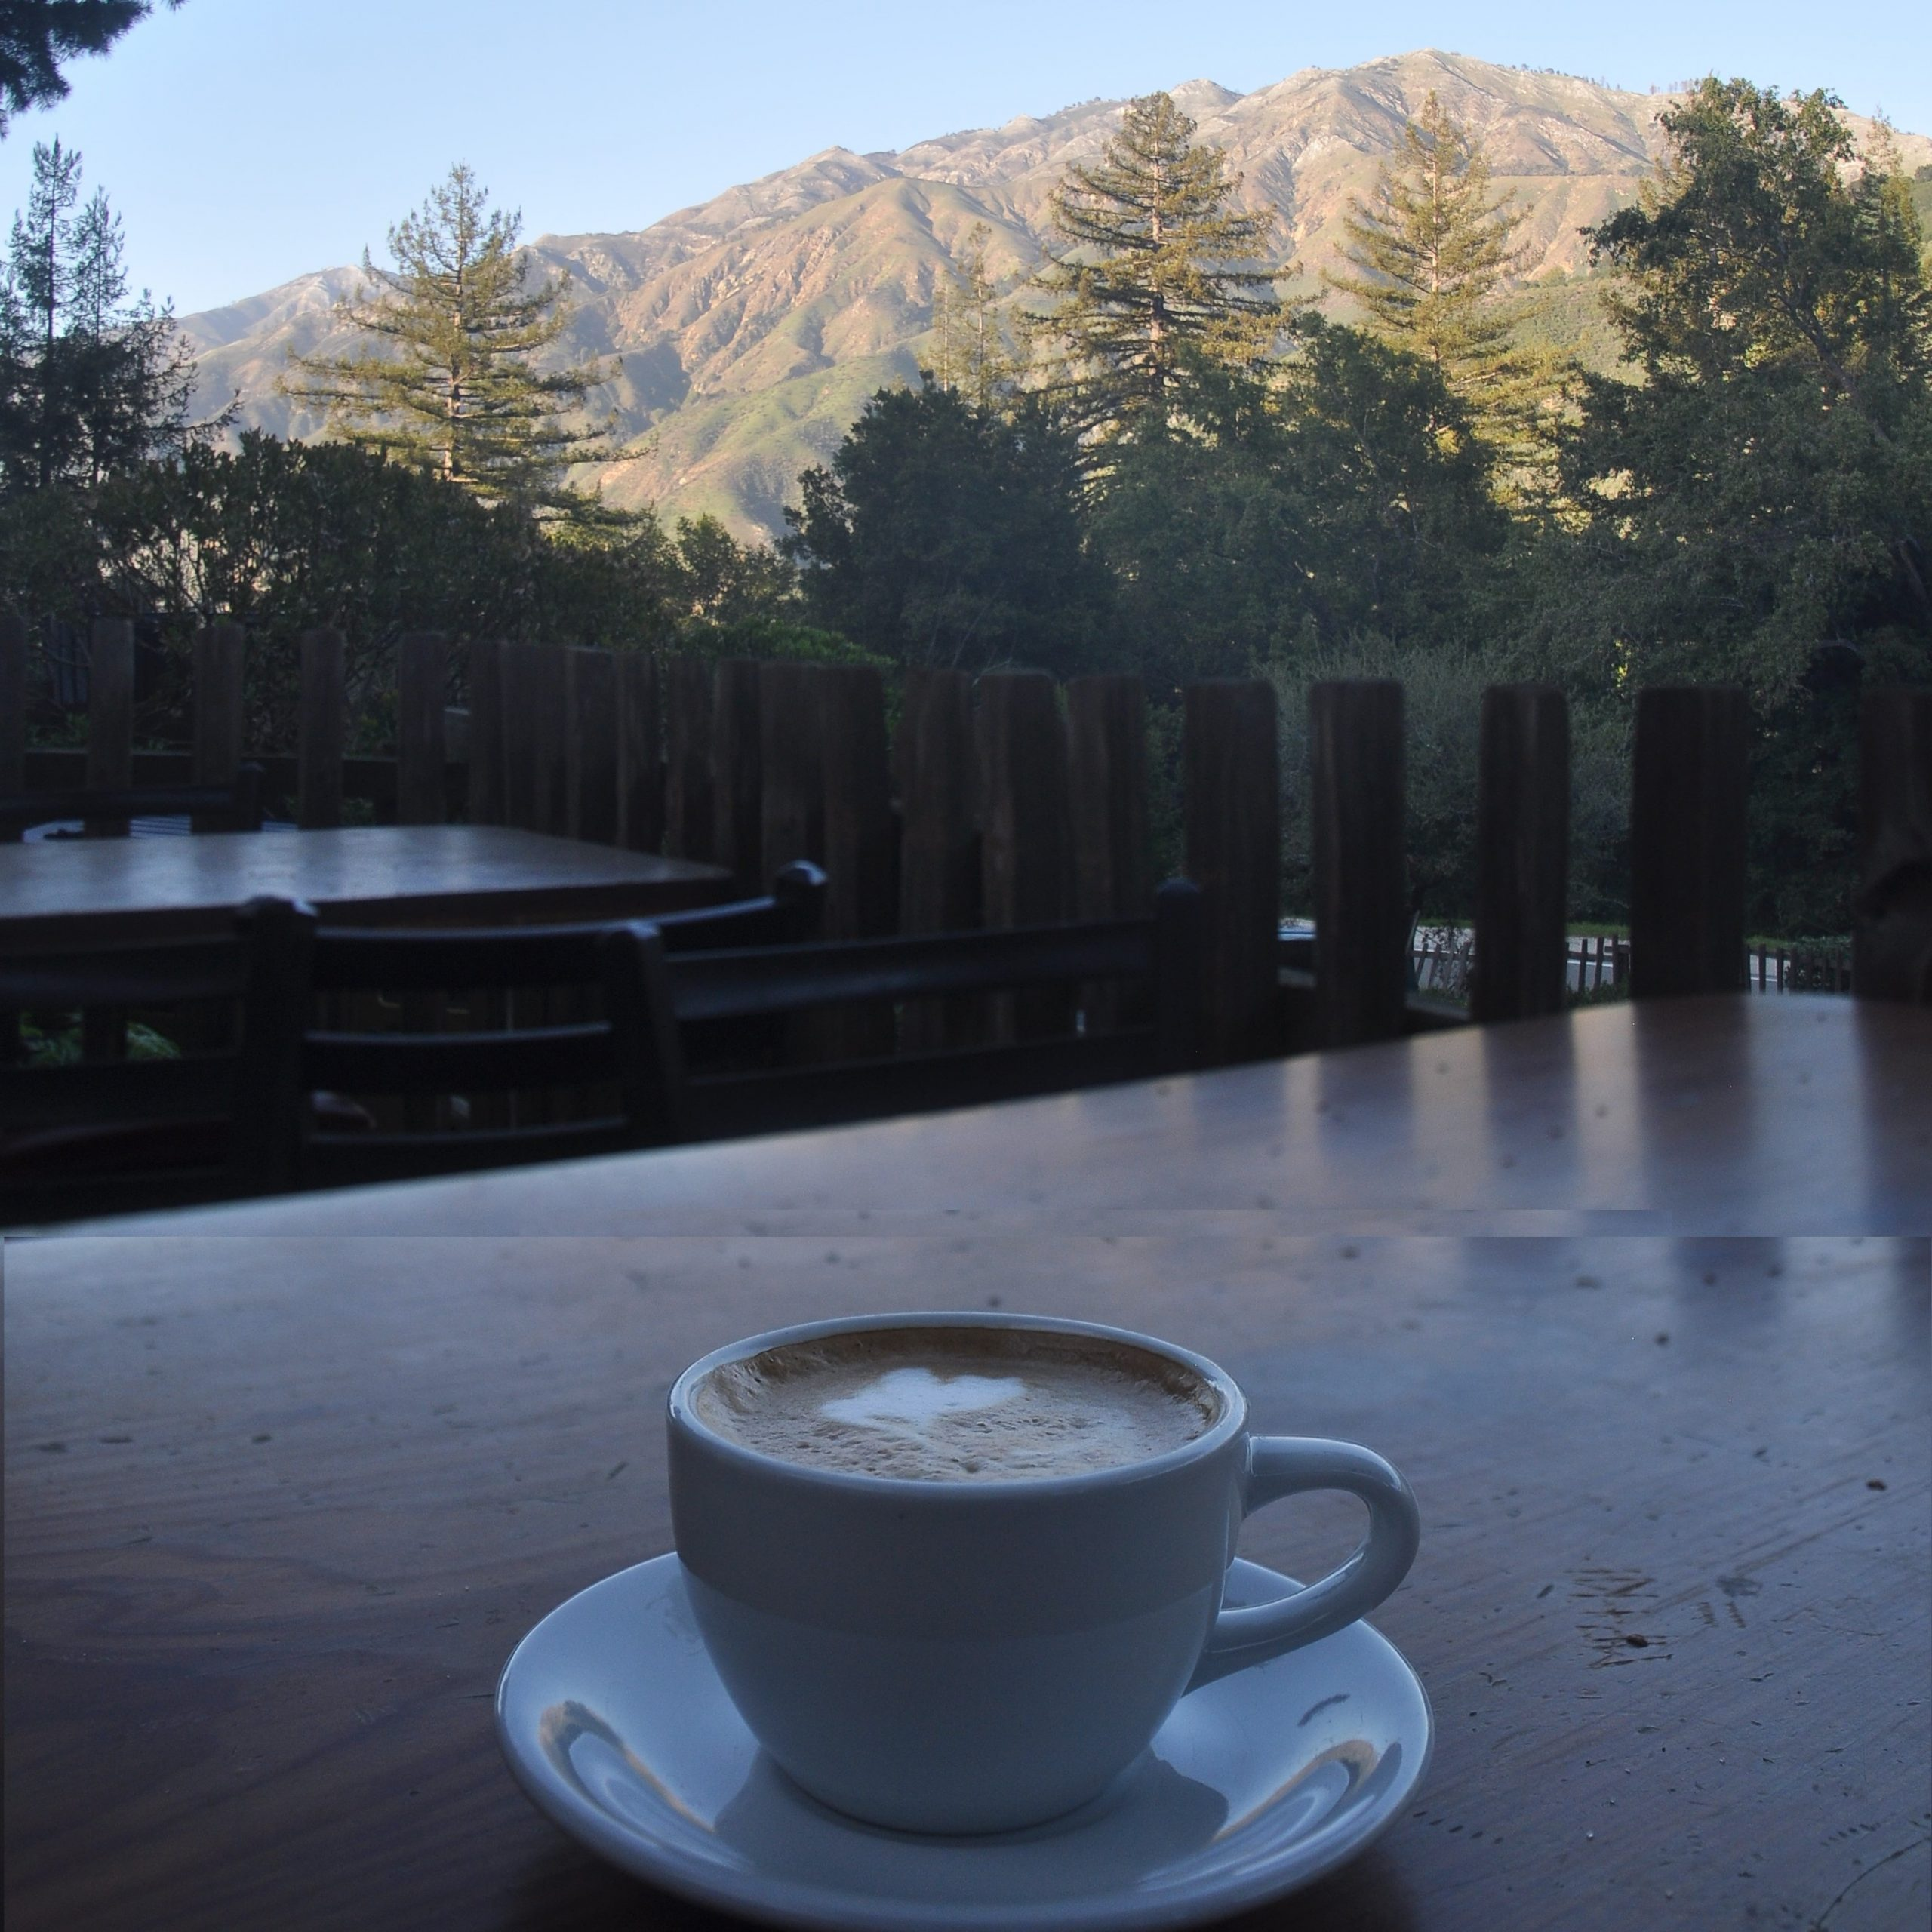 Enjoying a flat white at the Big Sur Bakery, looking out over the mountains of the Santa Lucia Range in January 2017.